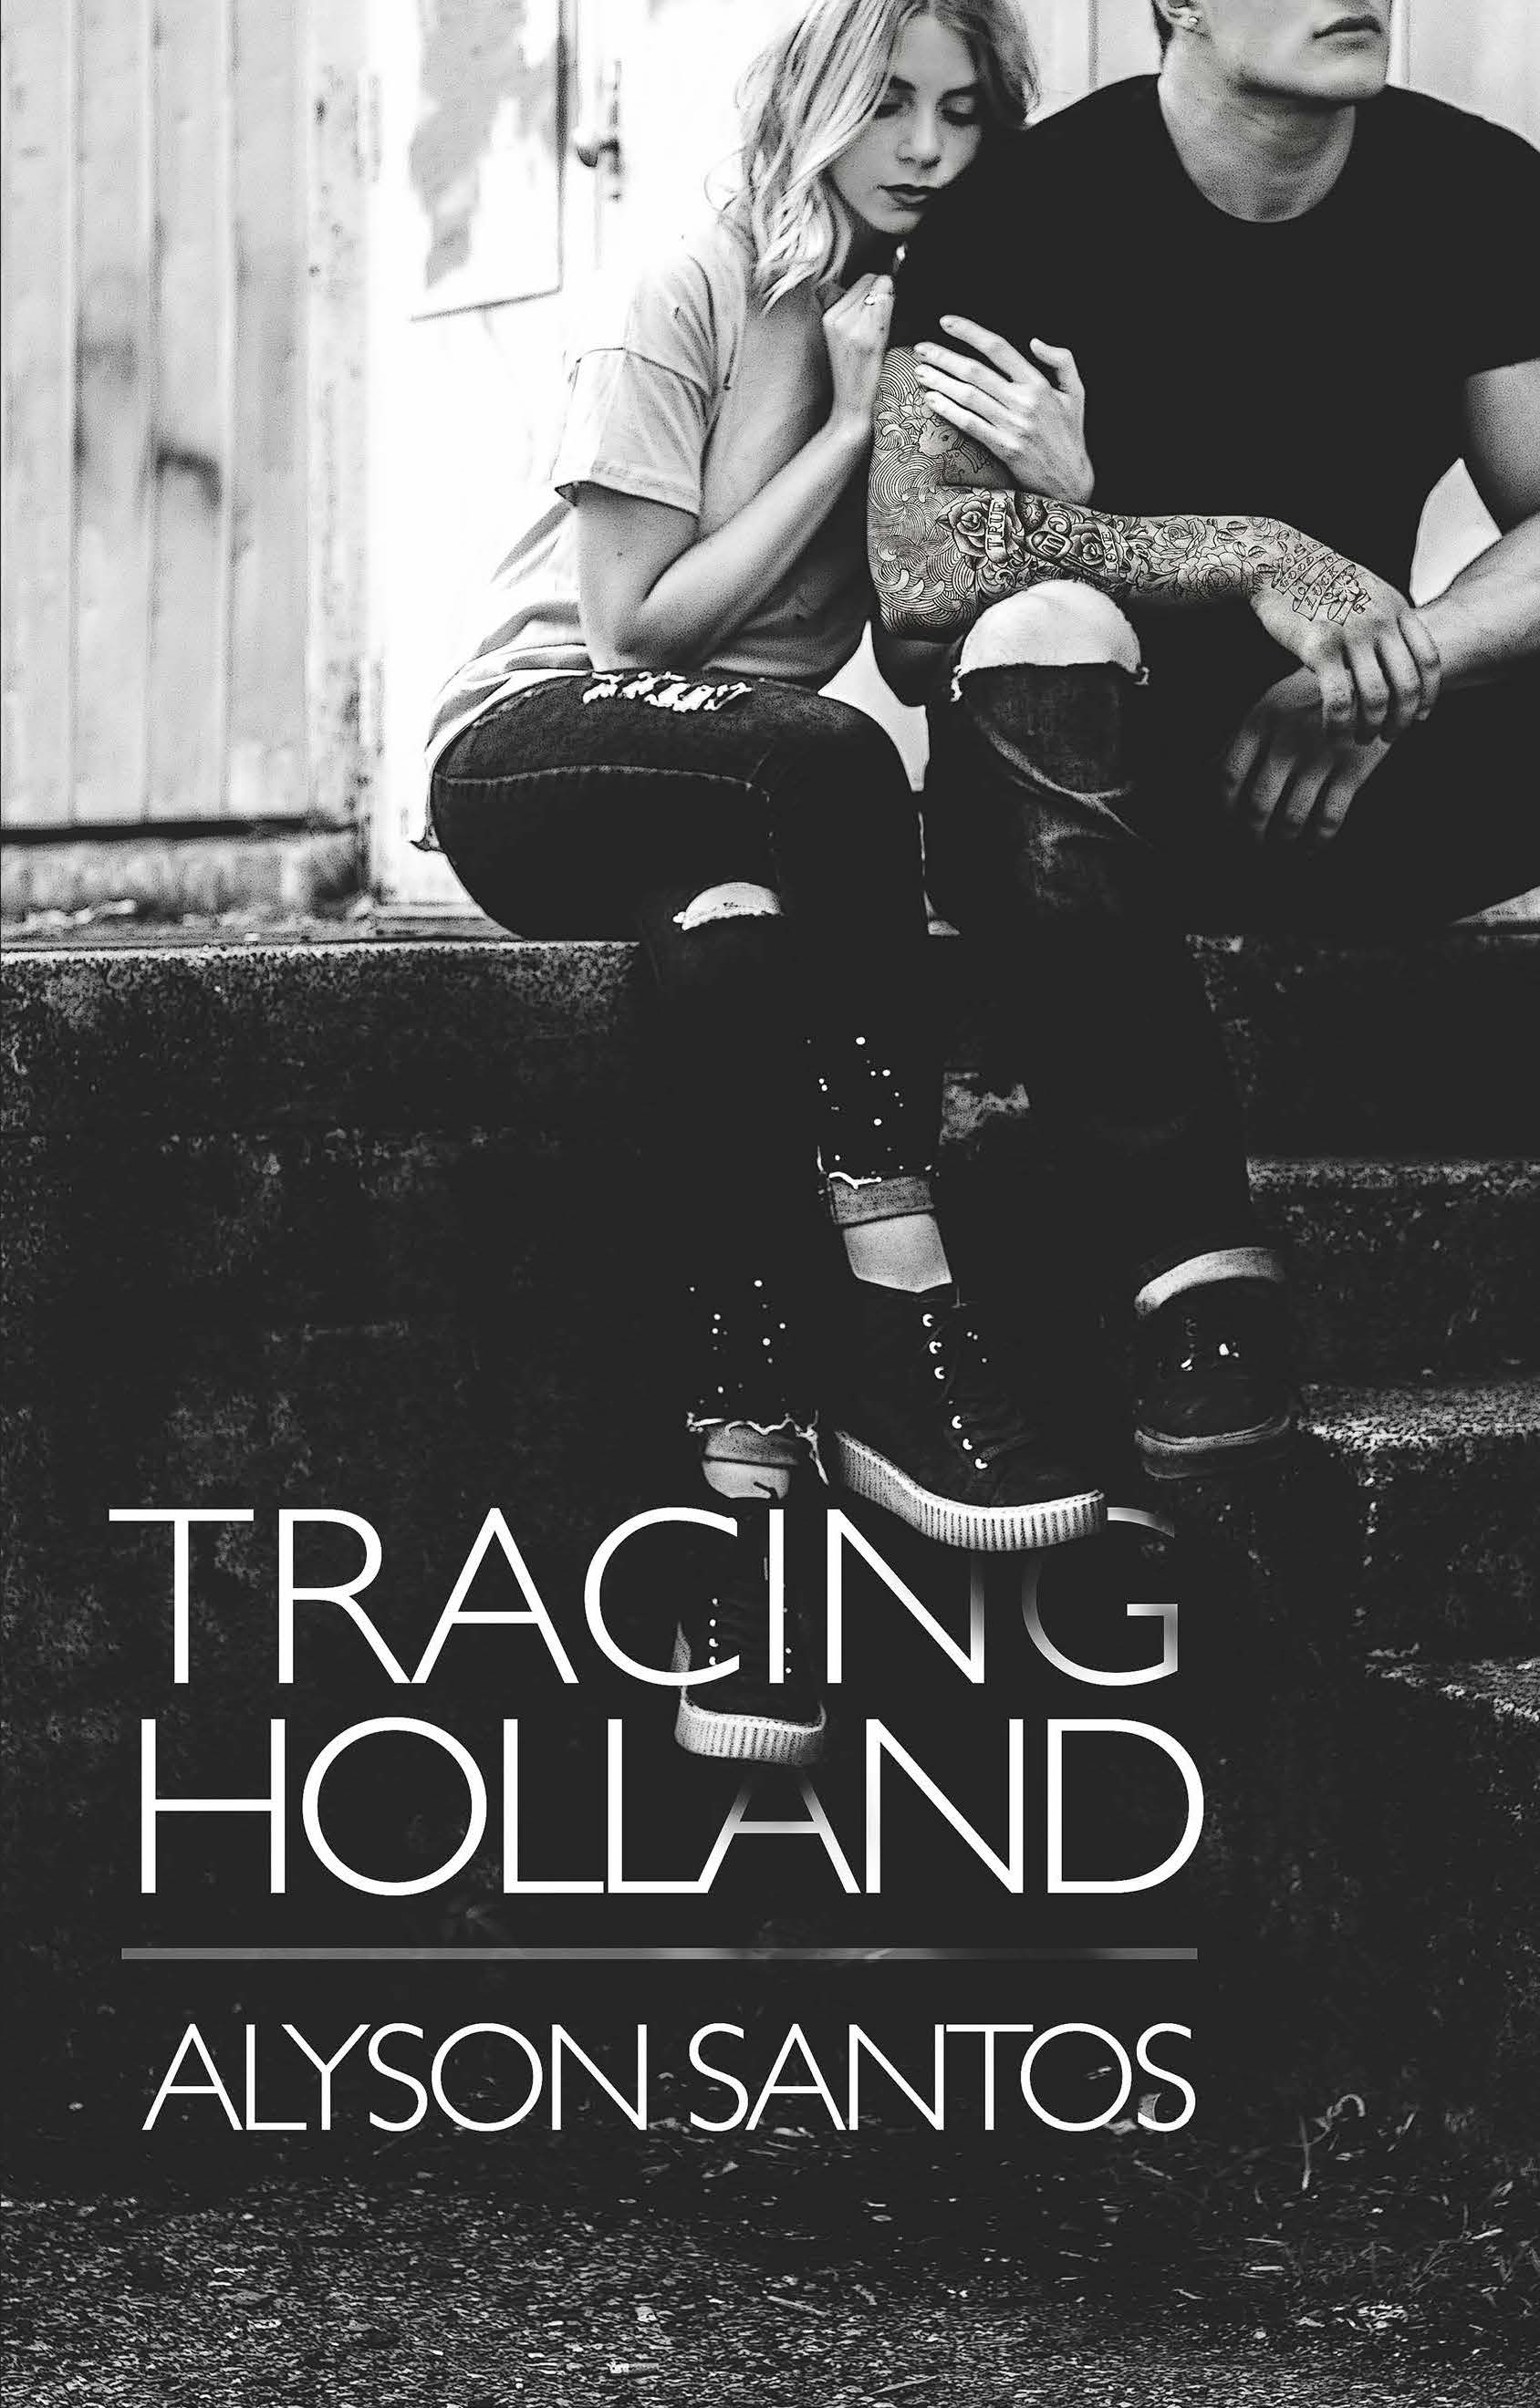 Tracing Holland (NSB Book 2) by Alyson Santos